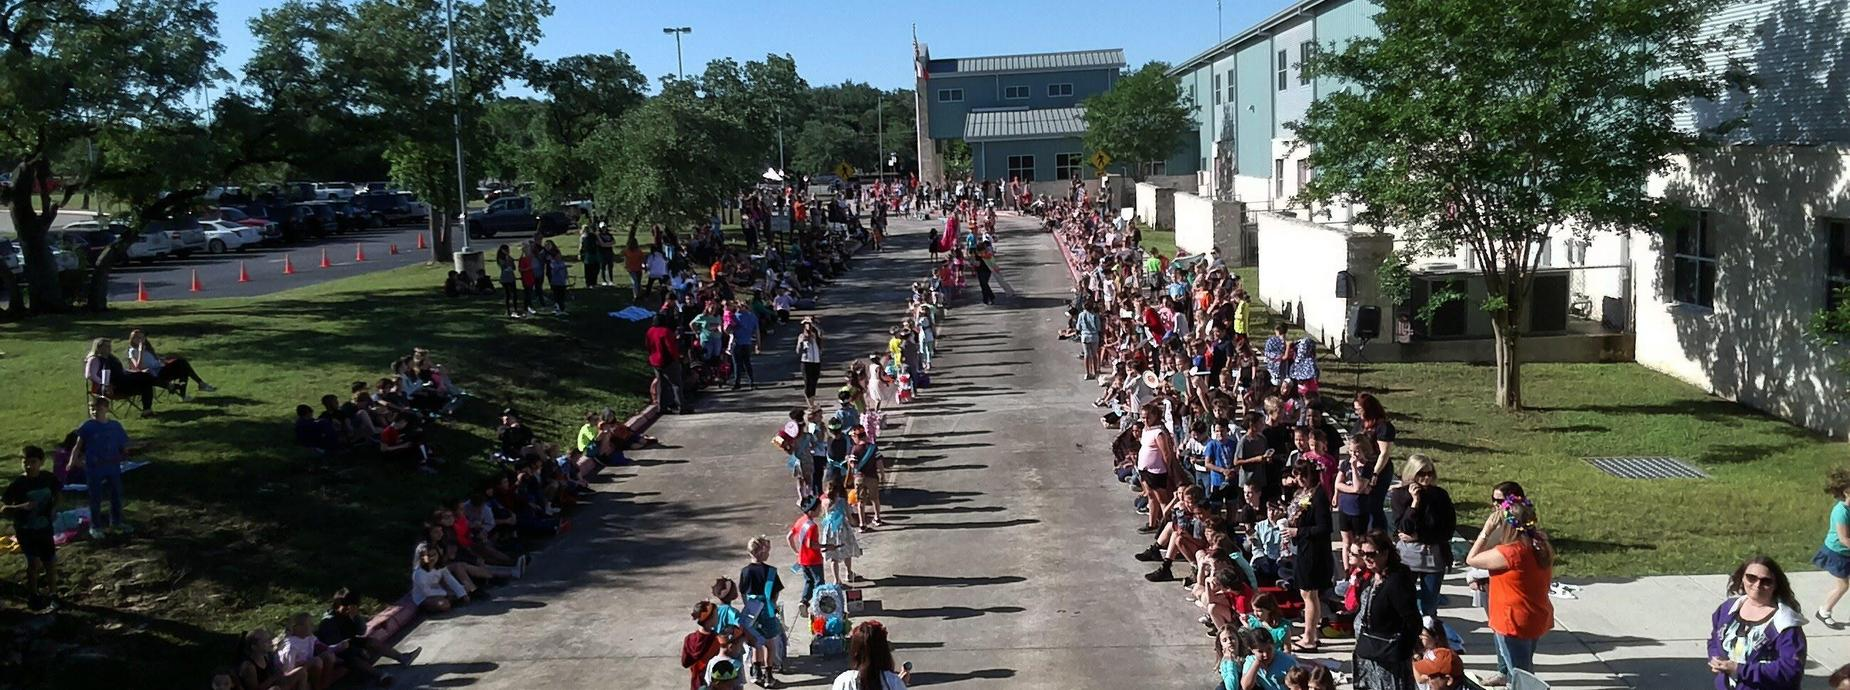 Drone view of Parade